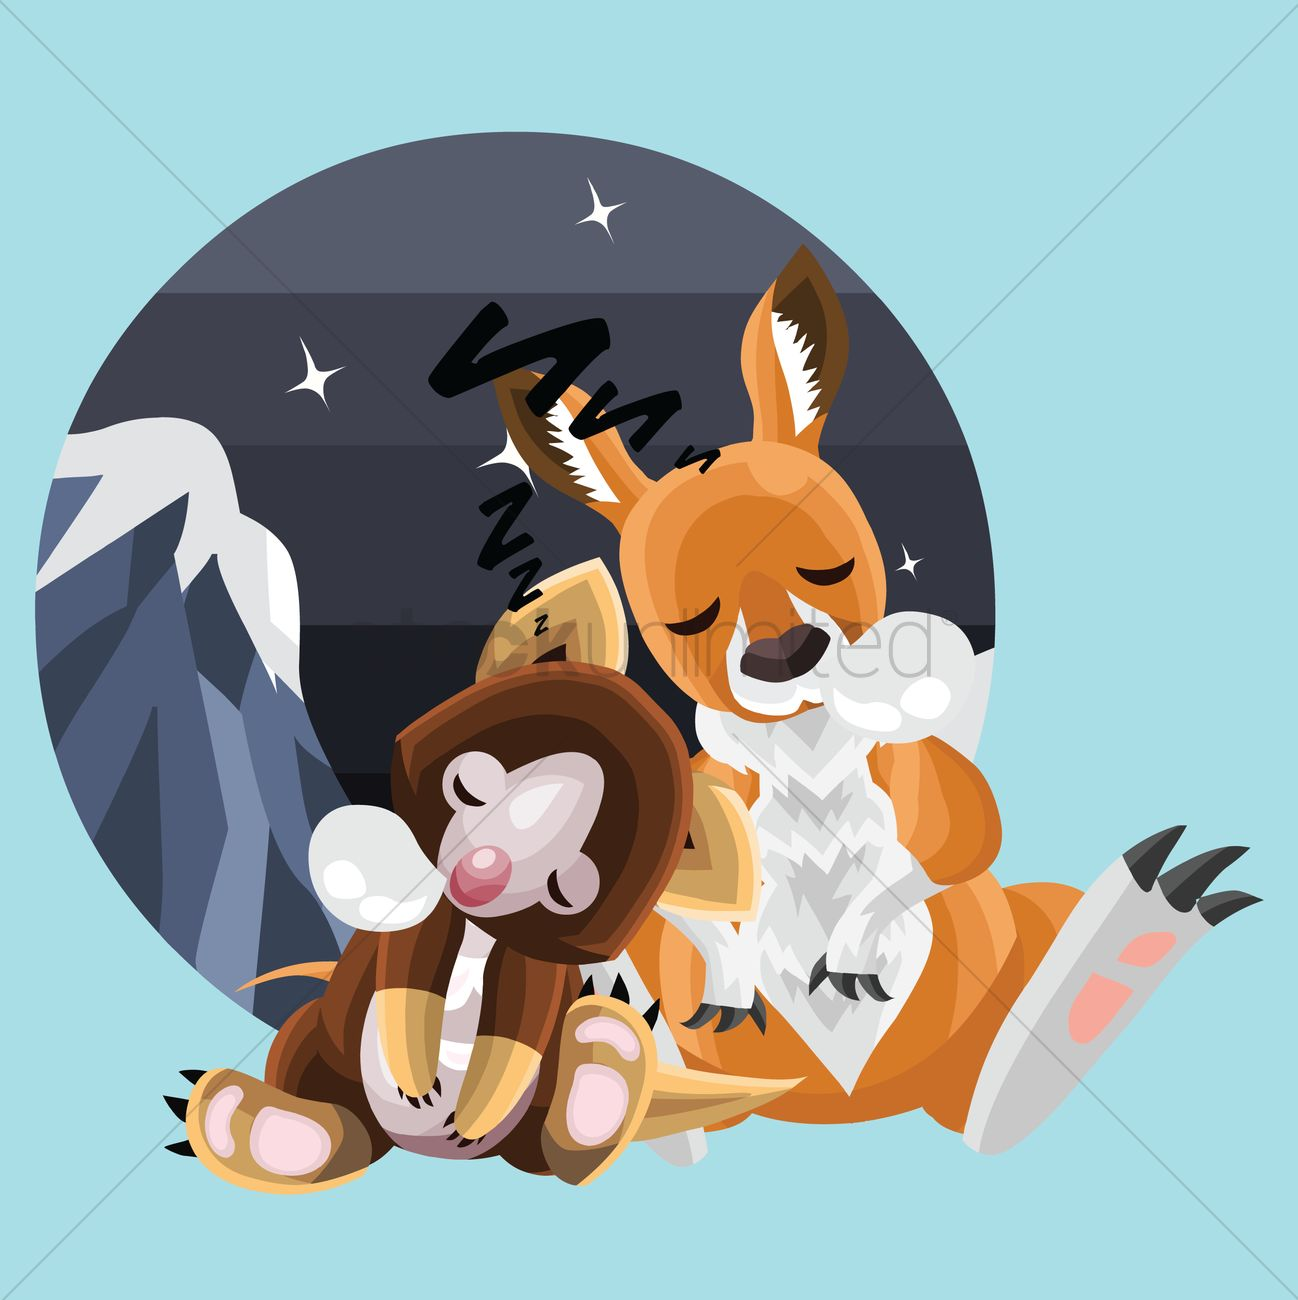 Animals sleeping together Vector Image.